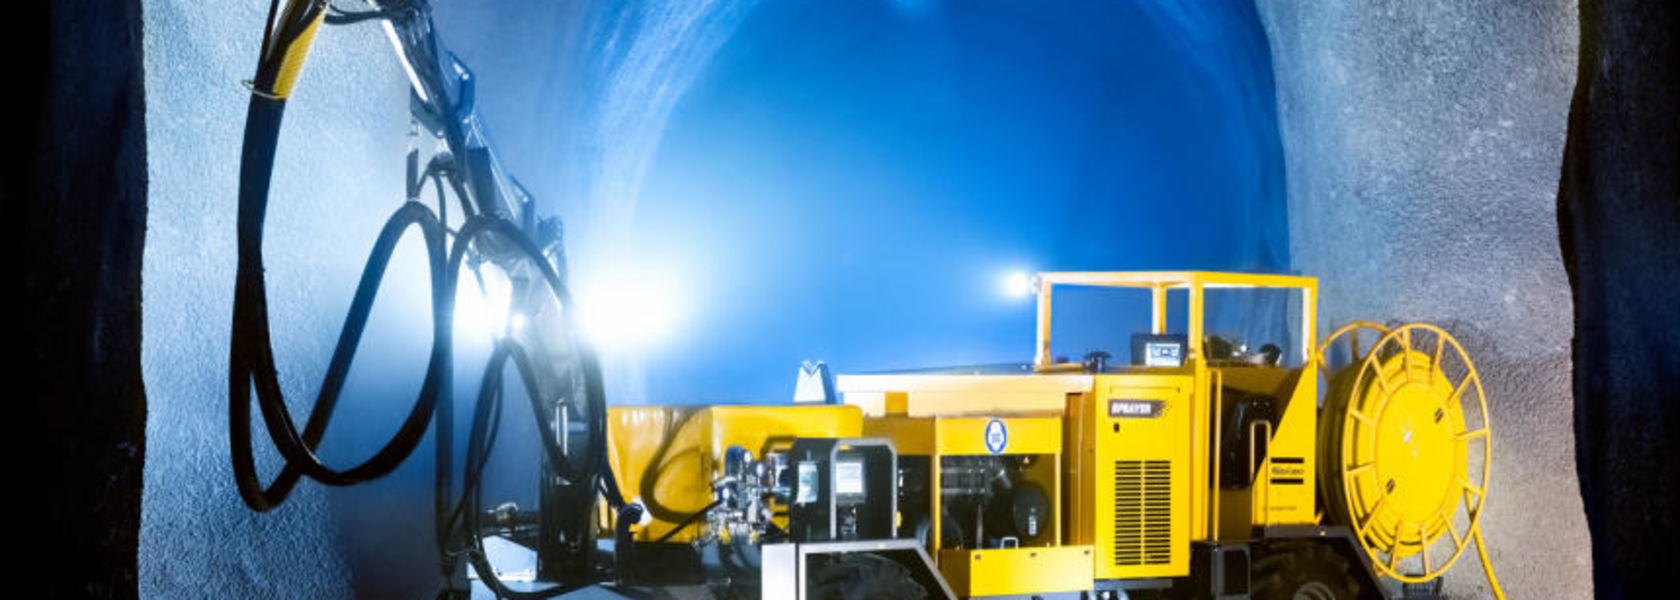 Atlas Copco claims accurate spraying with less waste